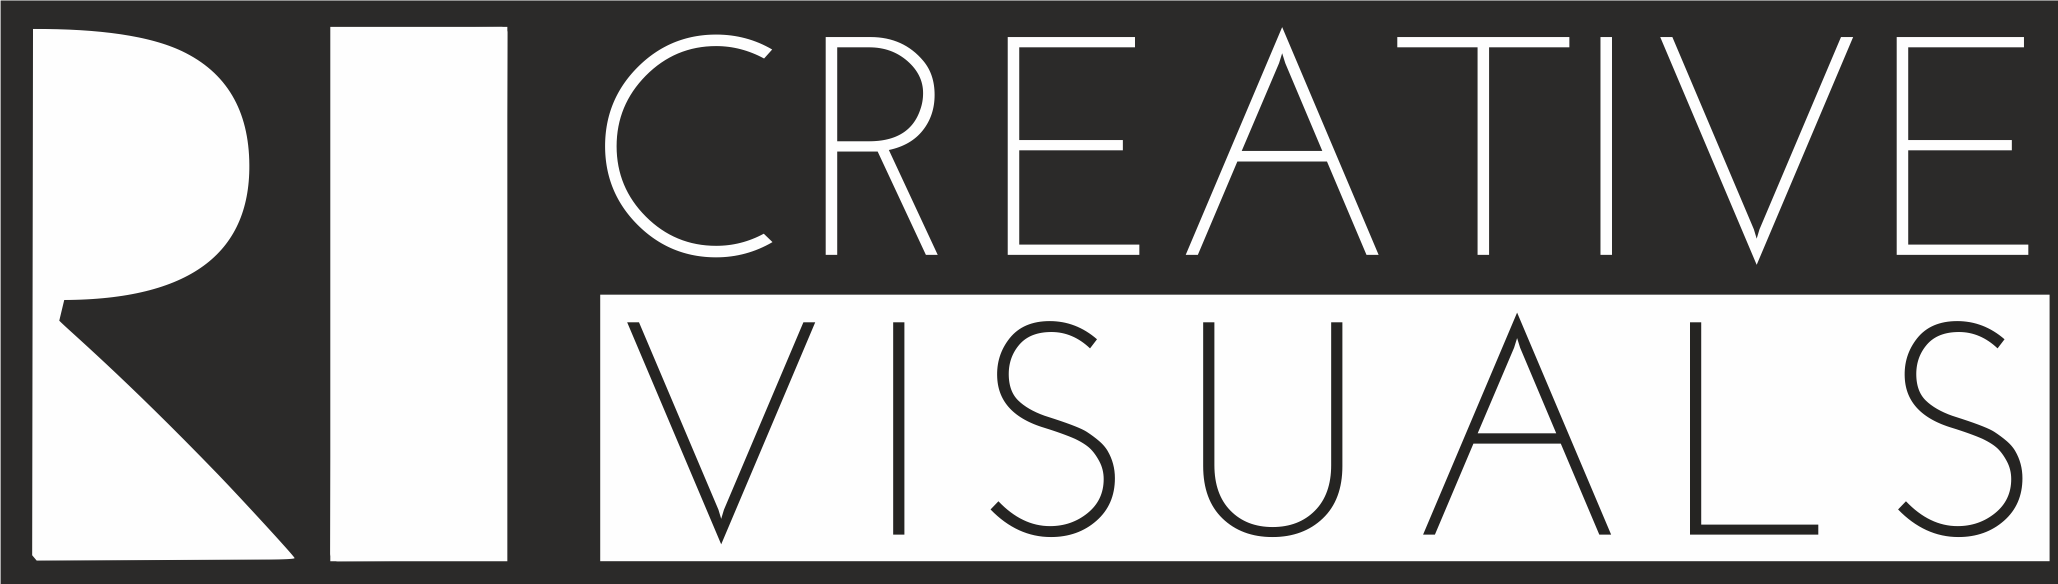 creative visuals logo